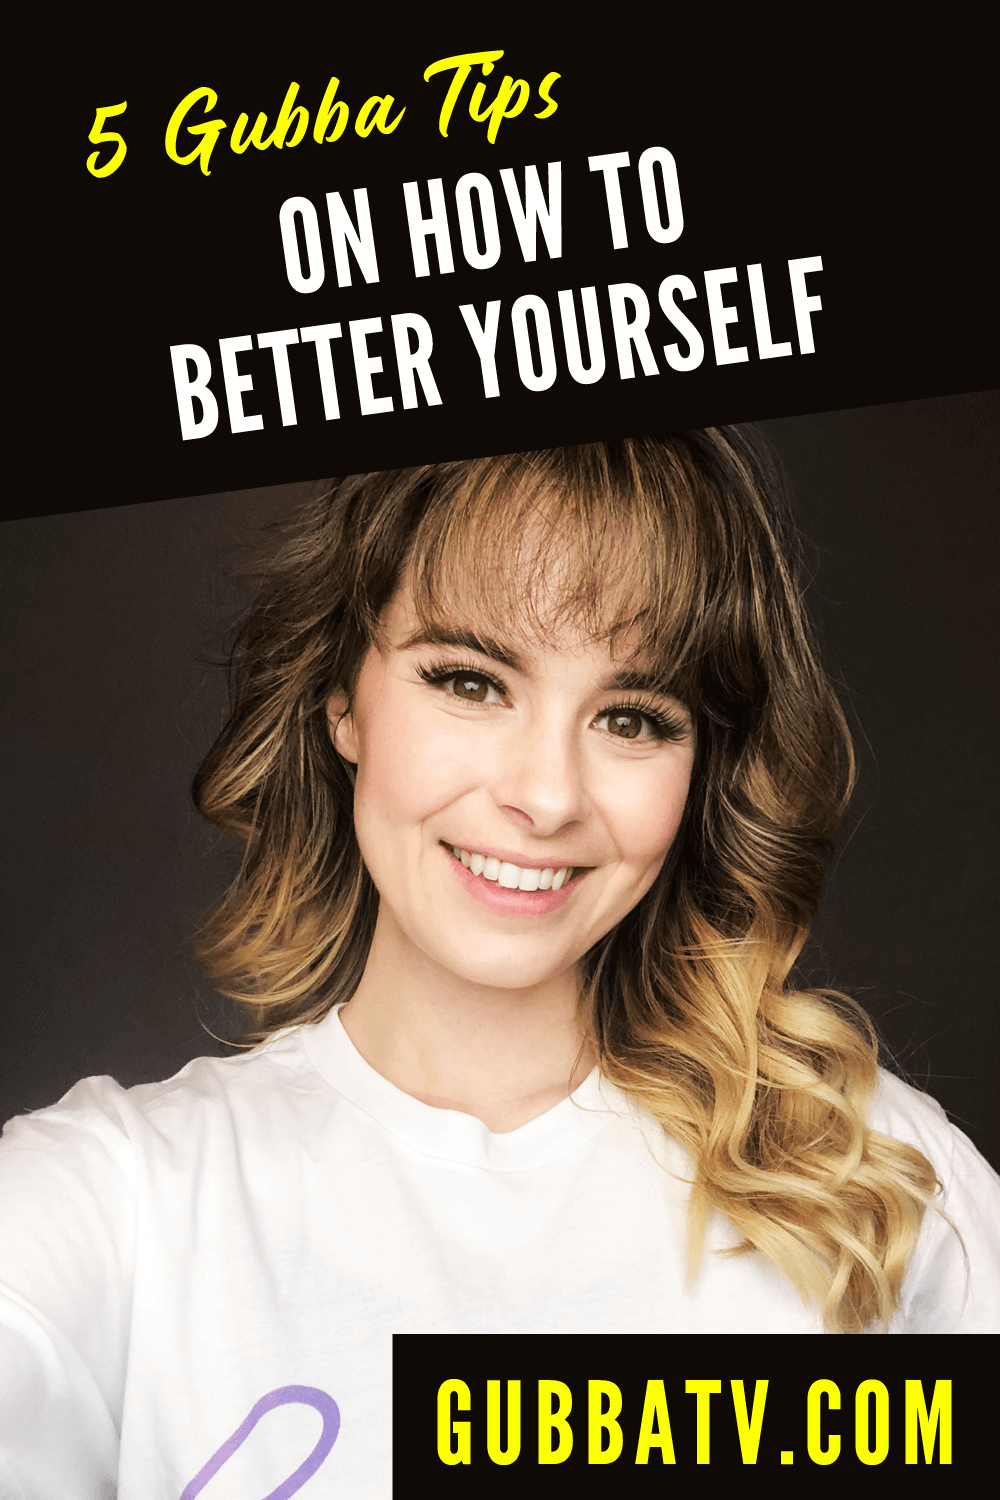 5 Gubba Tips On How To Better Yourself